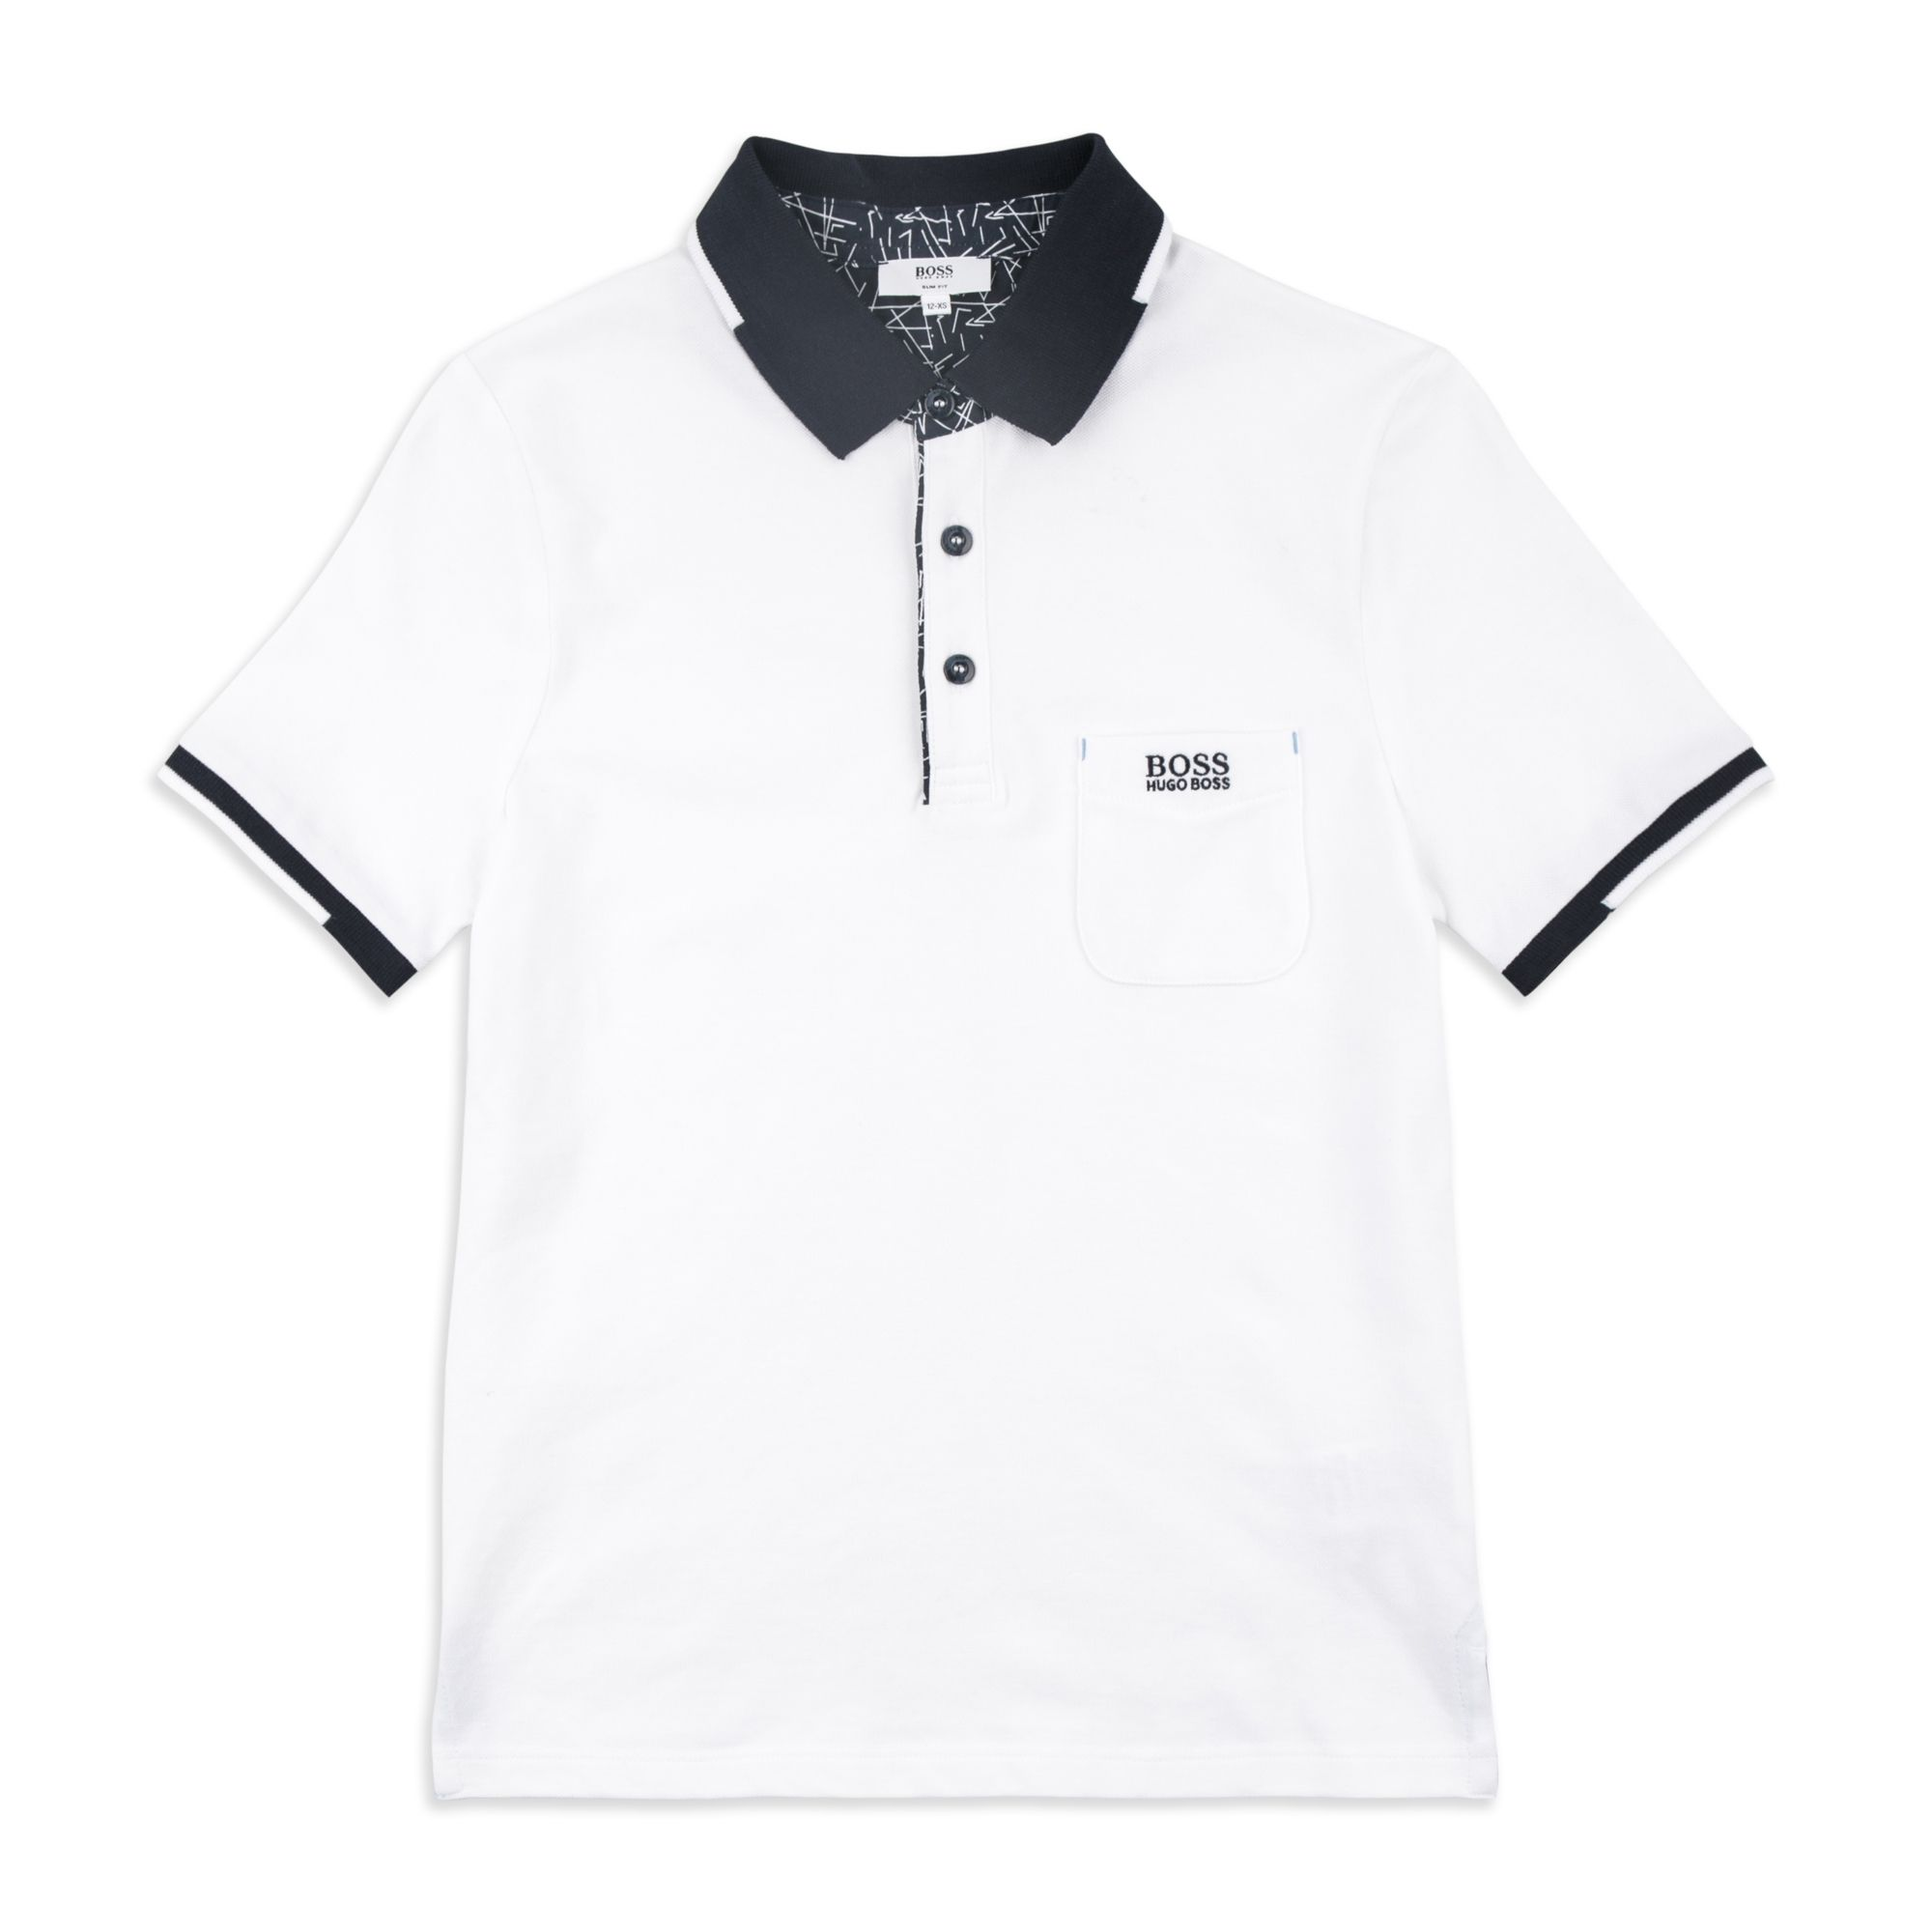 56ef24095 BOSS KIDS Boys Contrast Collar Pocket Polo - White Boys short sleeve polo •  Lightweight cotton pique • Three button placket • Contrast collar design •  Woven ...